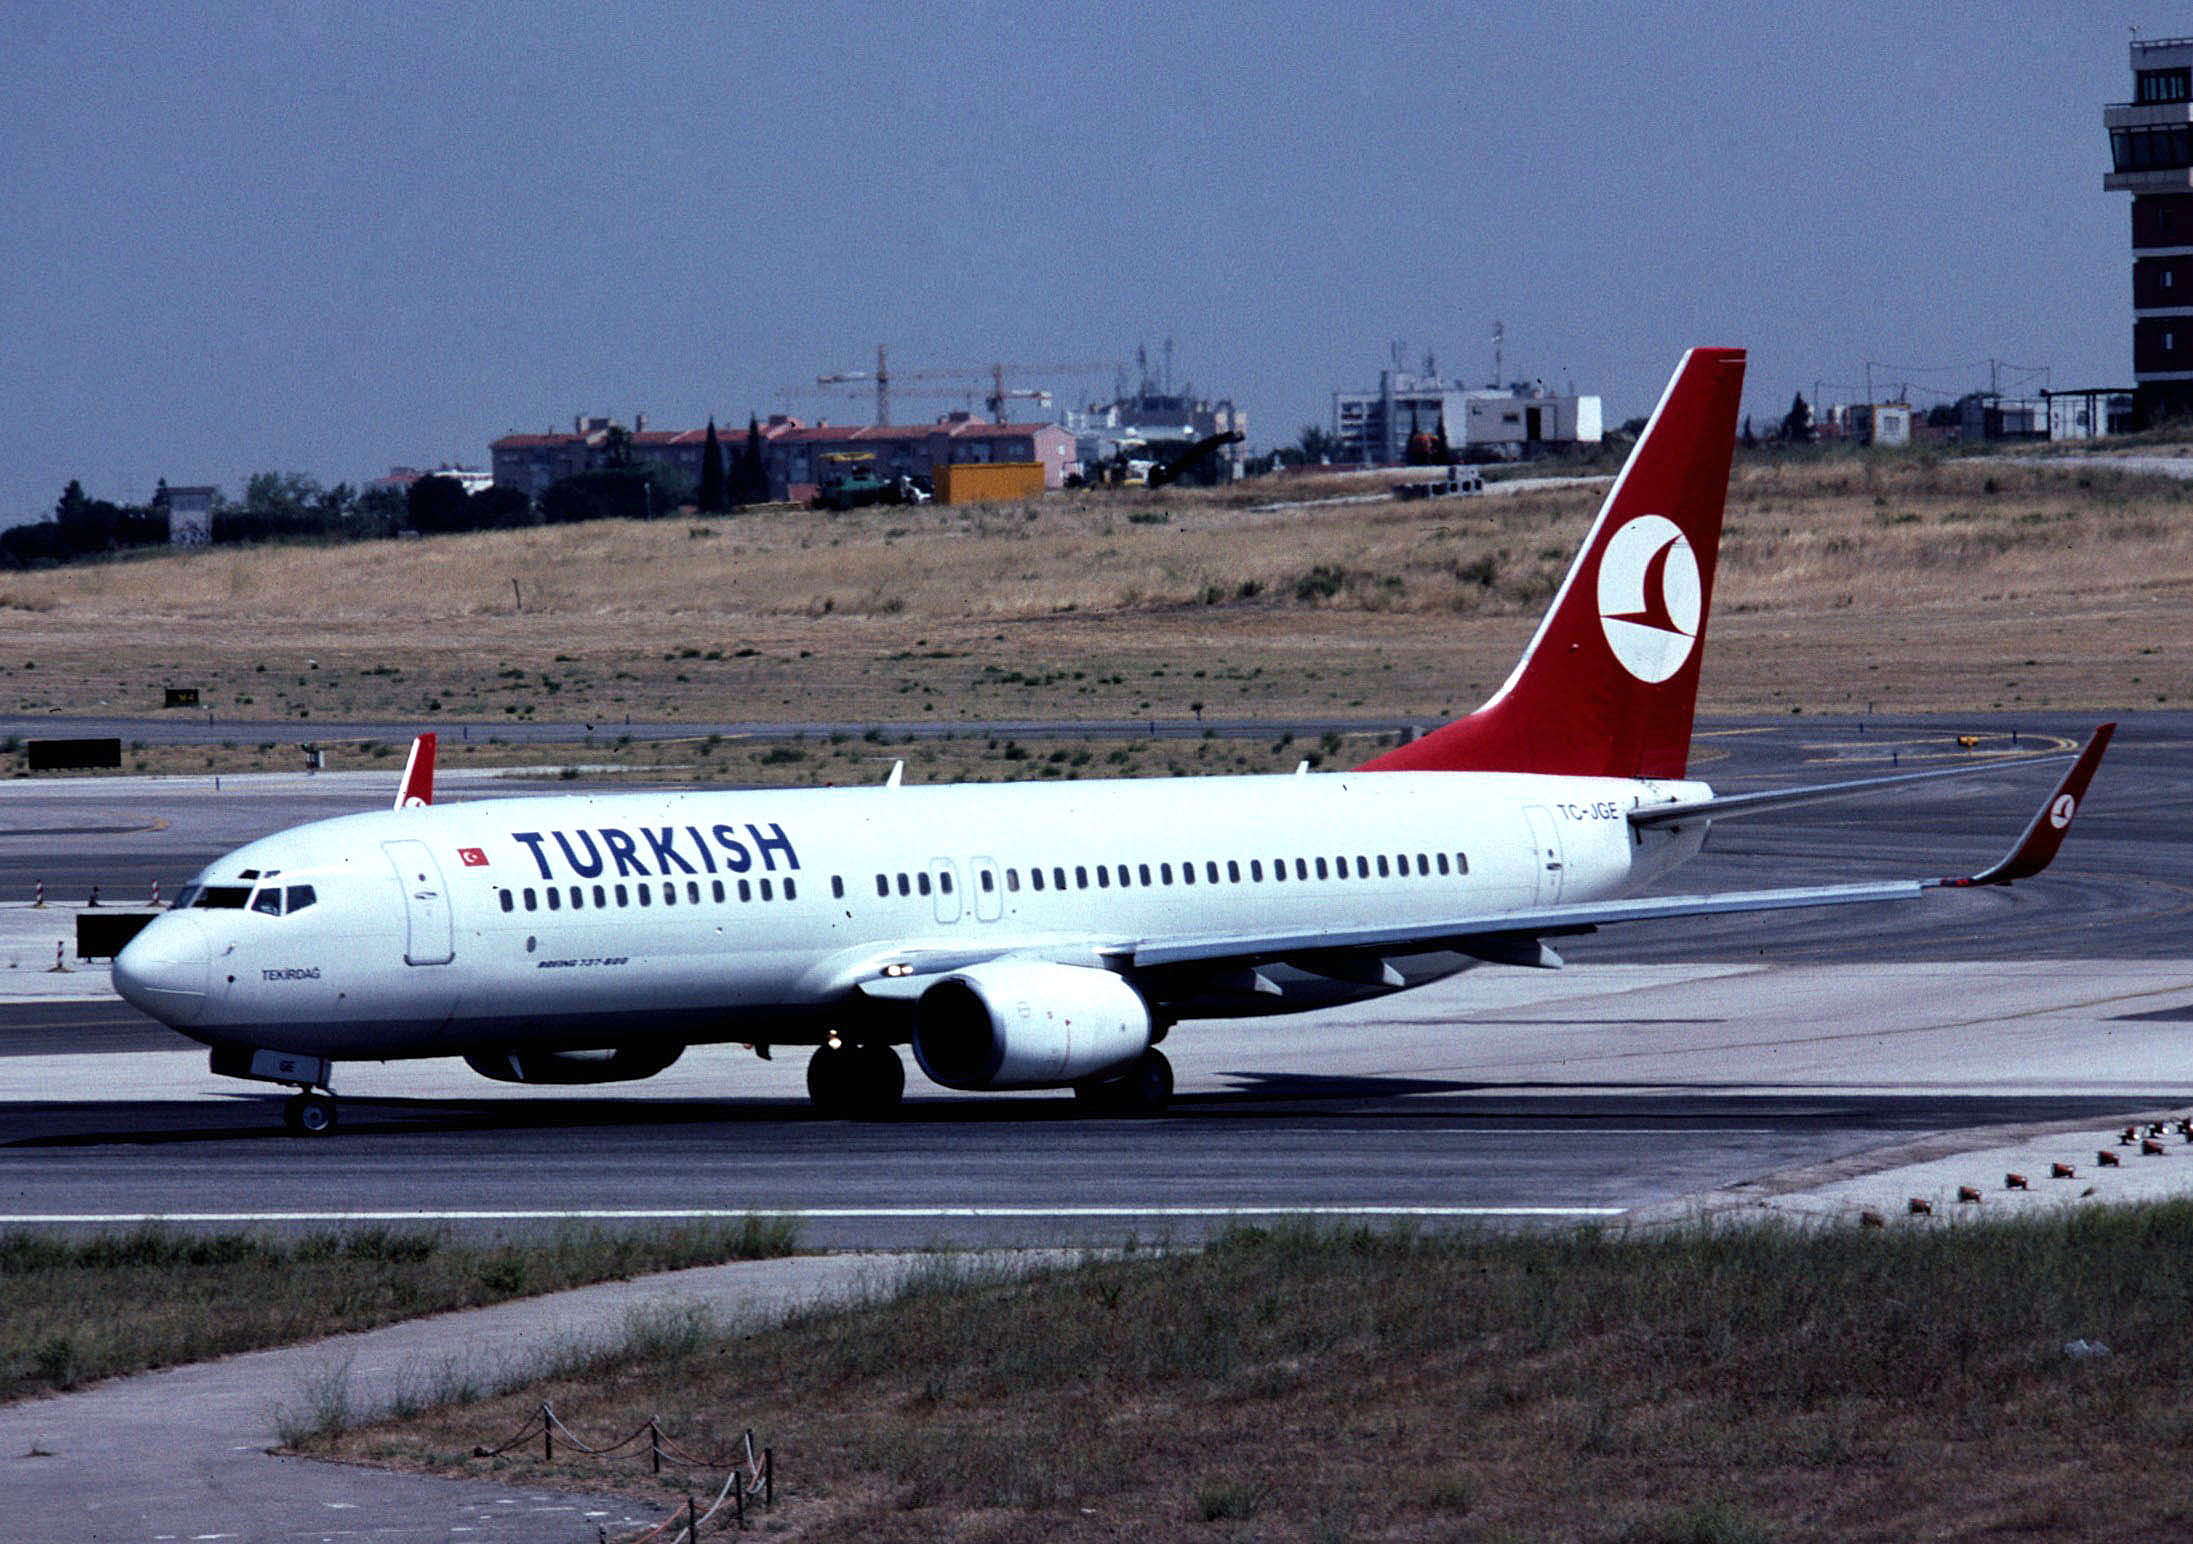 turkish-737-800-wl-tc-jge-90grd-lis-p4lr.jpg